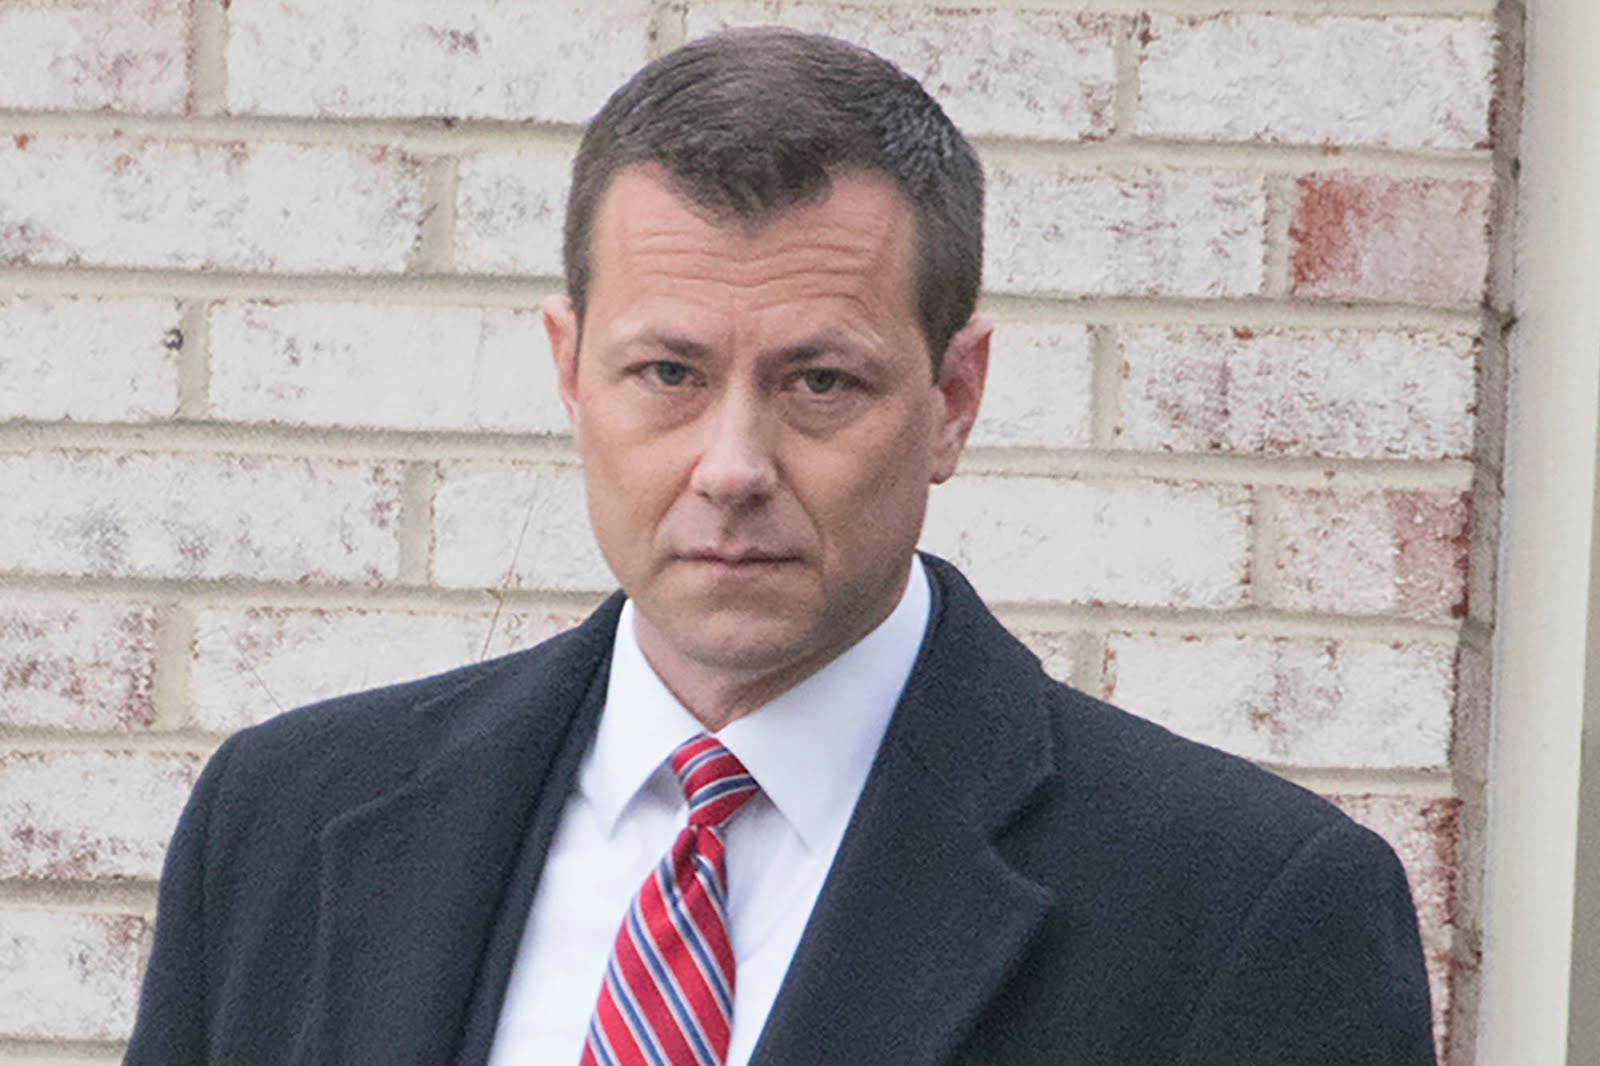 PETER STRZOK FIRED !